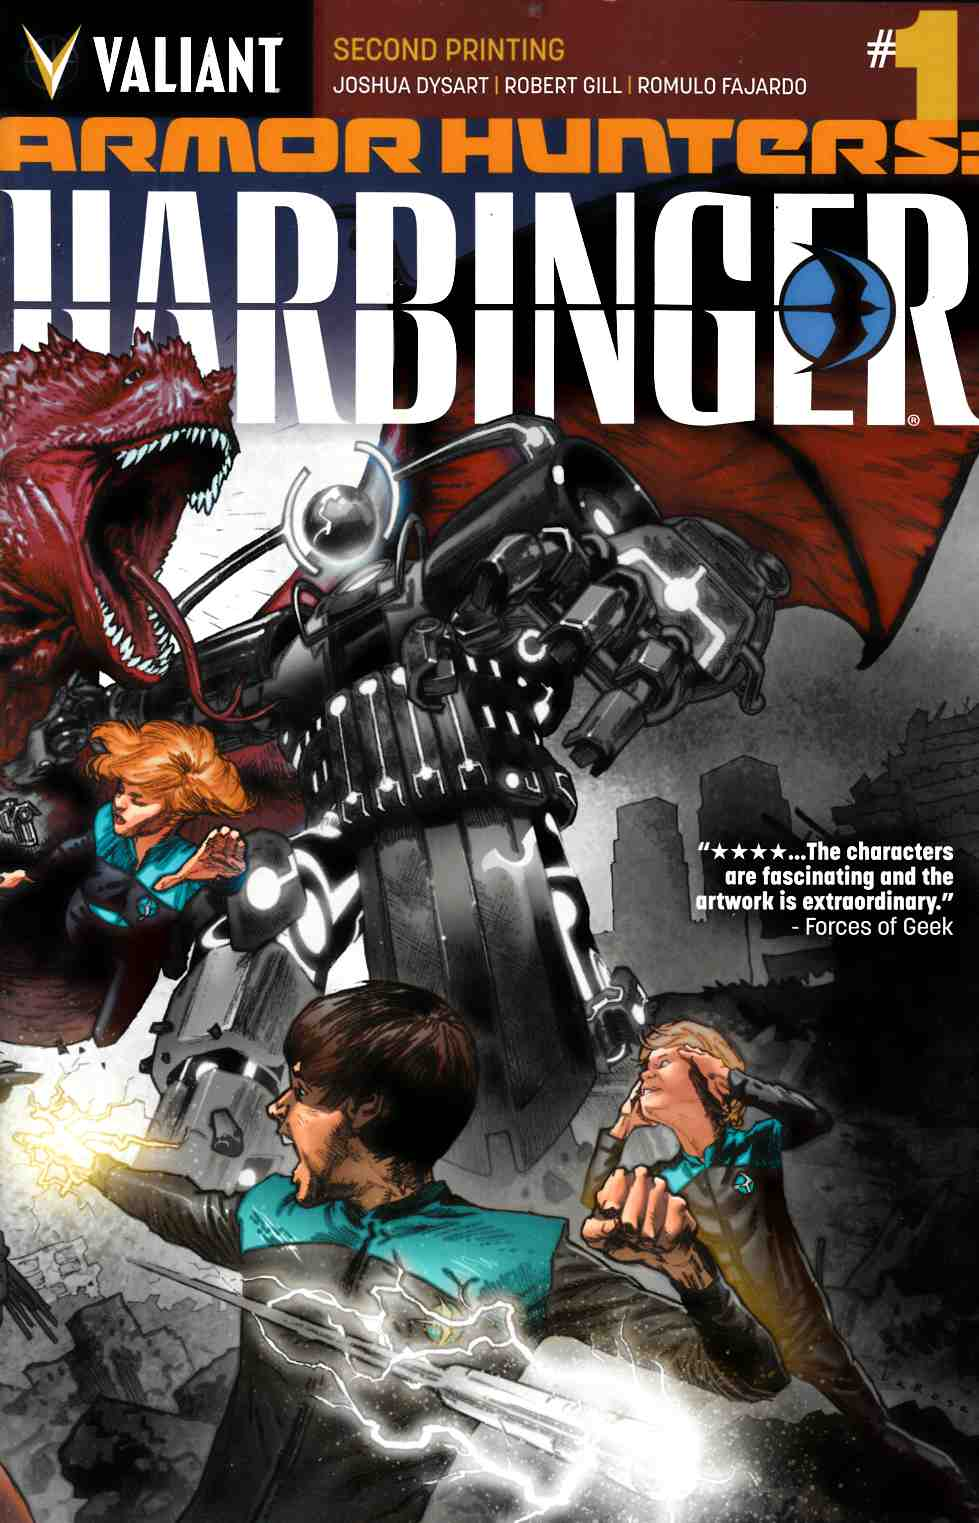 Armor Hunters Harbinger #1 Second Printing [Valiant Comic]